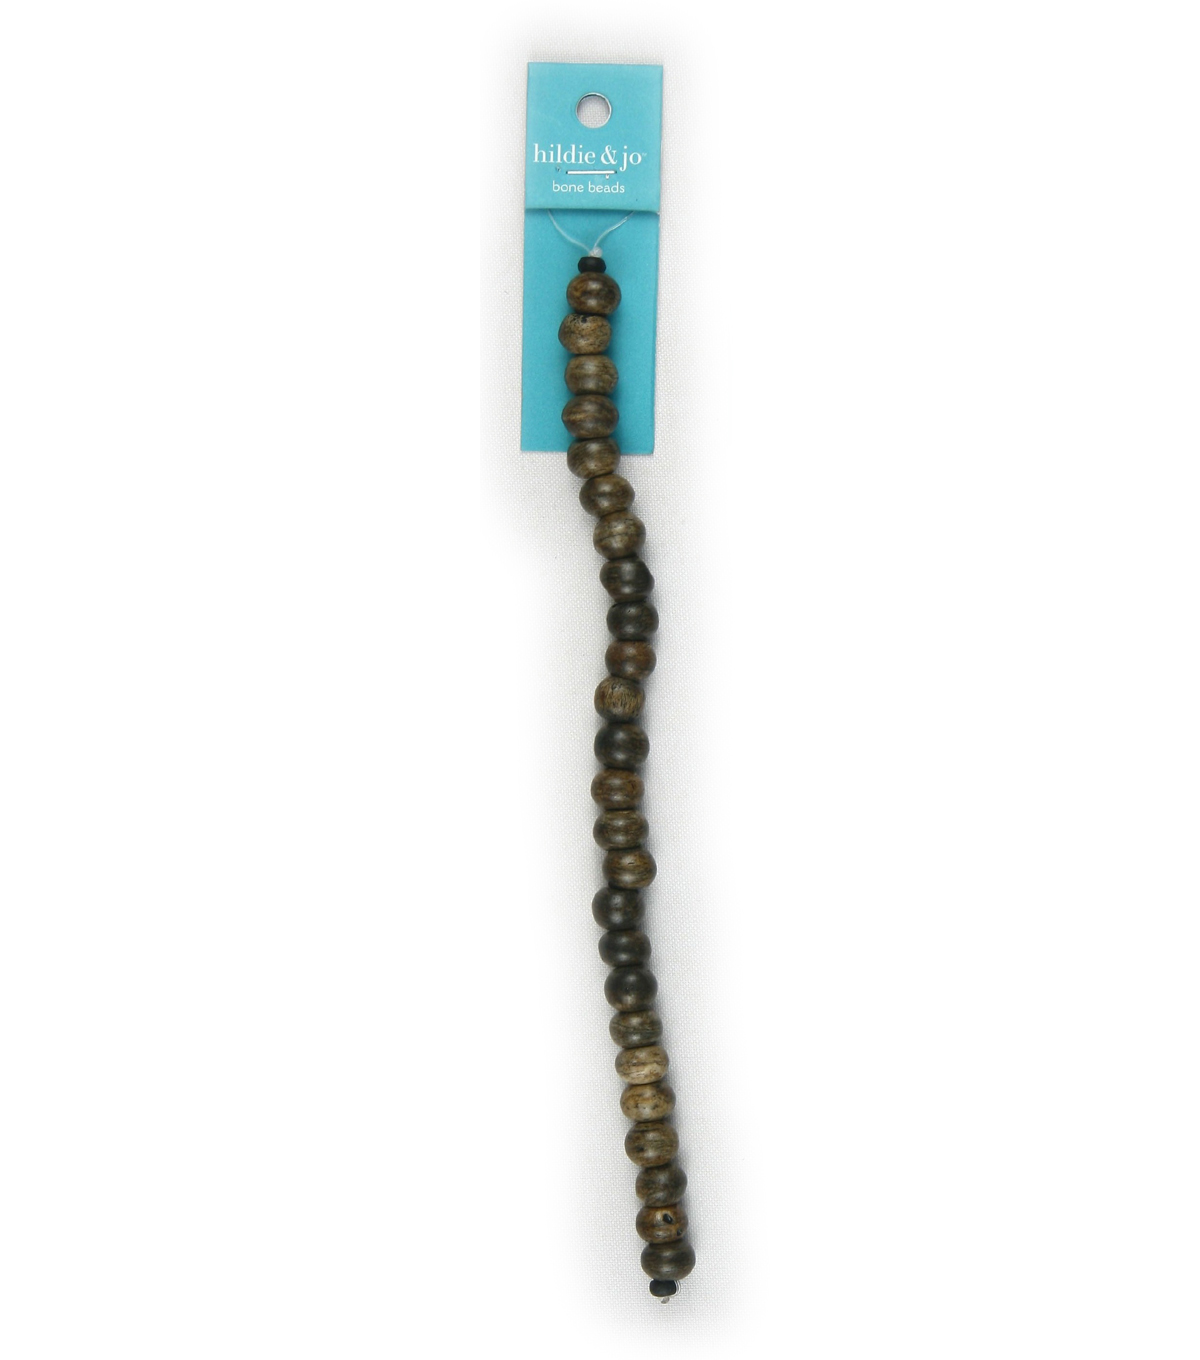 hildie & jo Round Bone Strung Beads-Brown